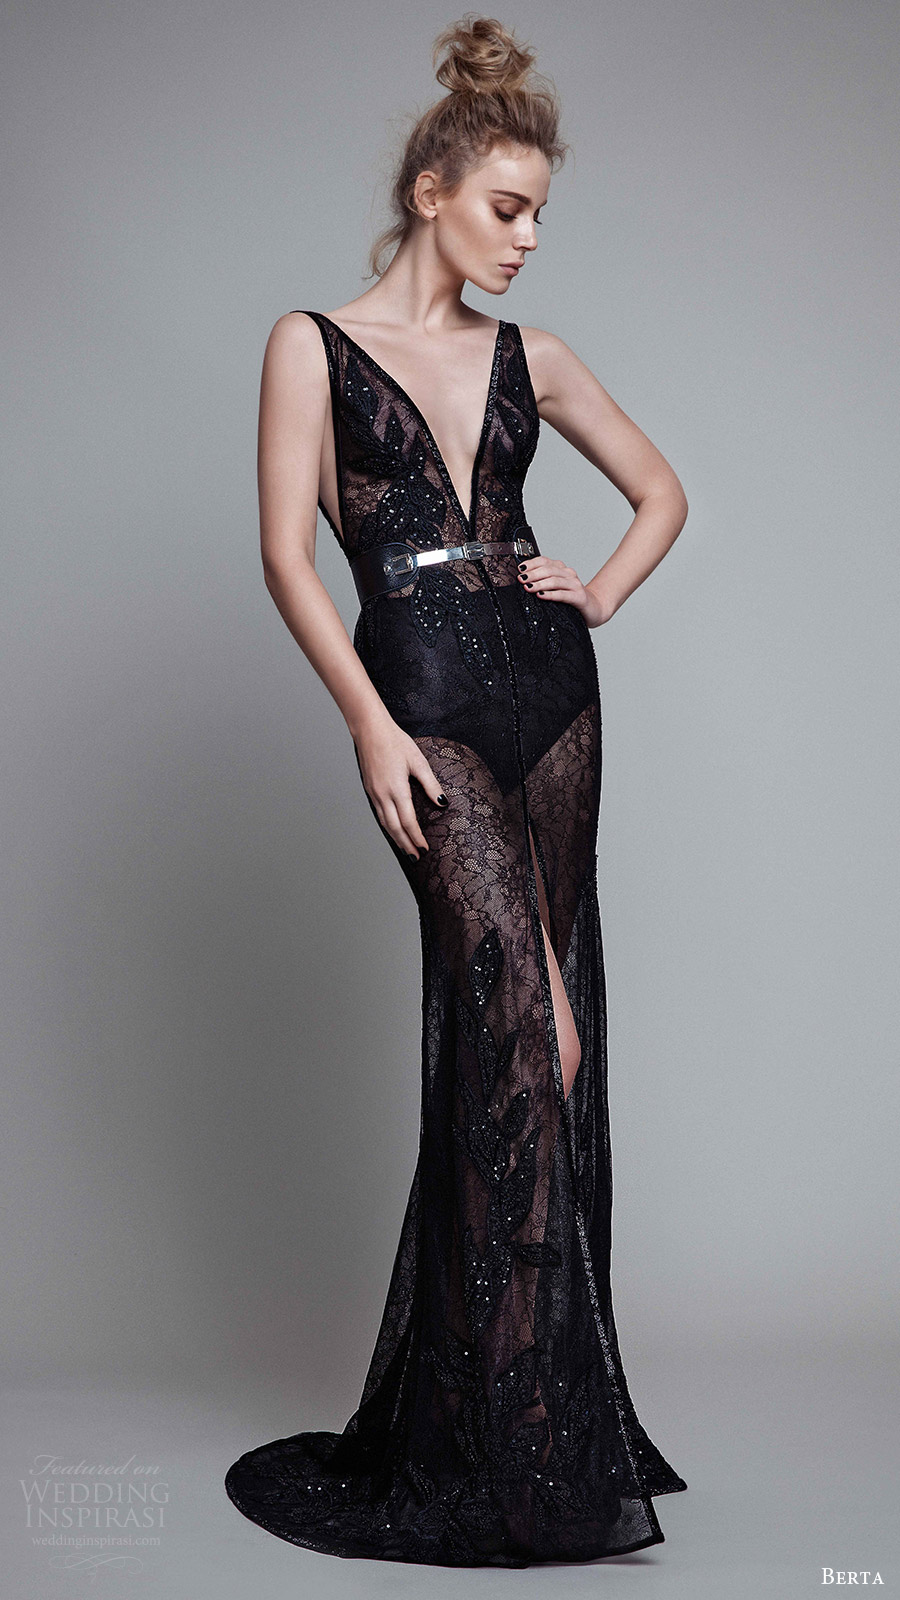 berta rtw fall 2017 (17 21) sleeveless deep v neck sheath embellished black evening dress slit skirt mv